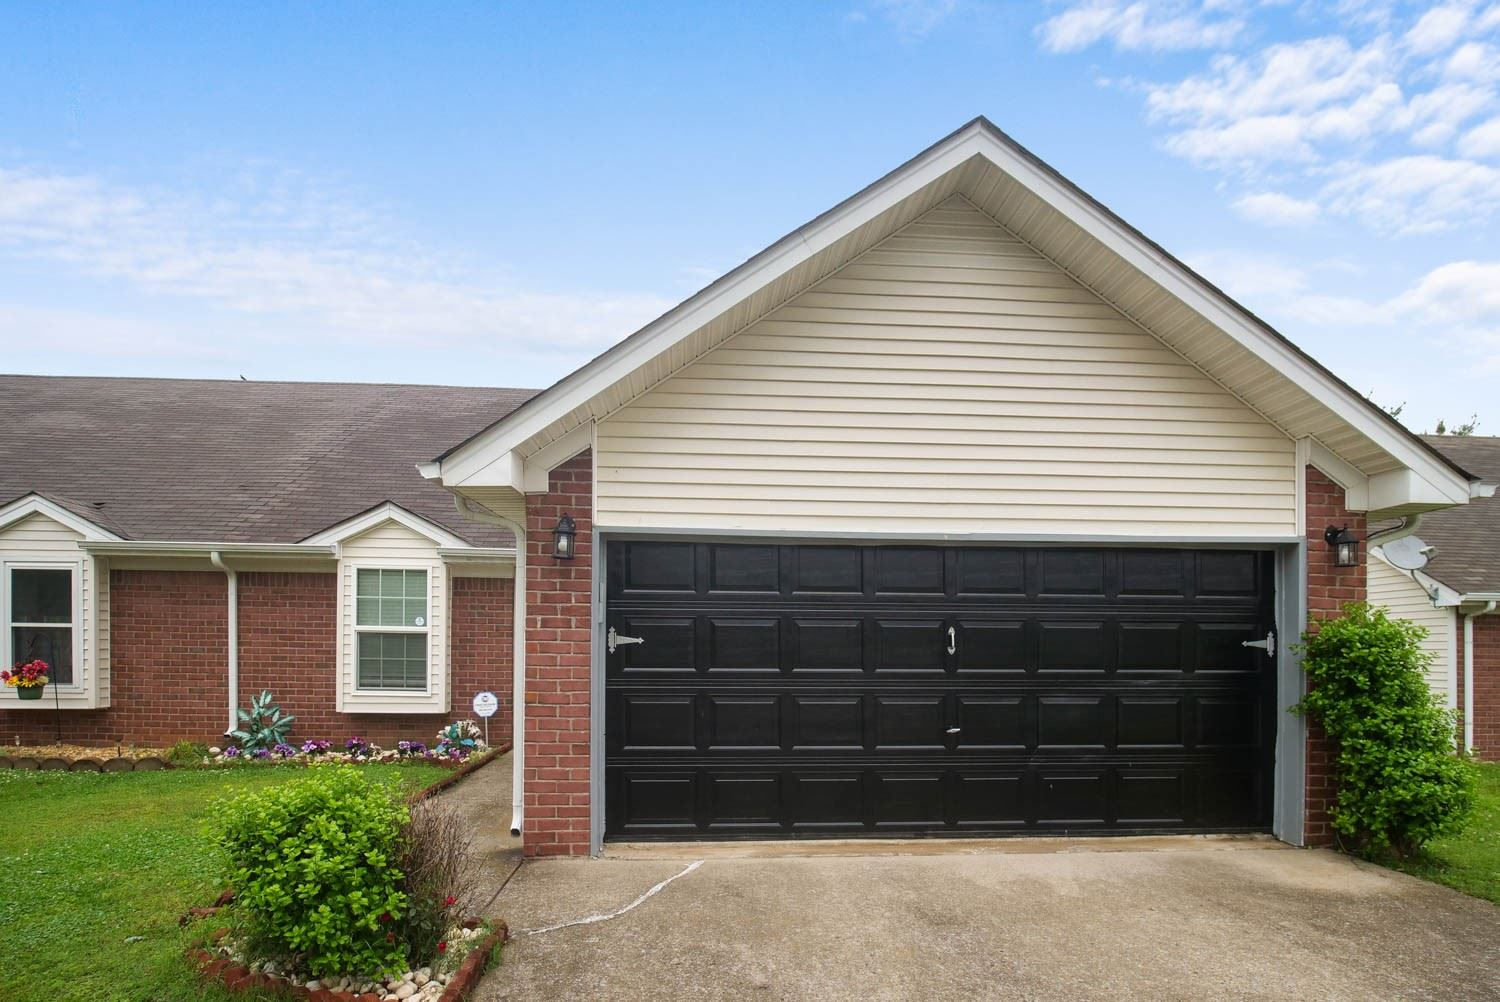 Photo of 254 Indian Park Dr, Murfreesboro, TN 37128 (MLS # 2251984)